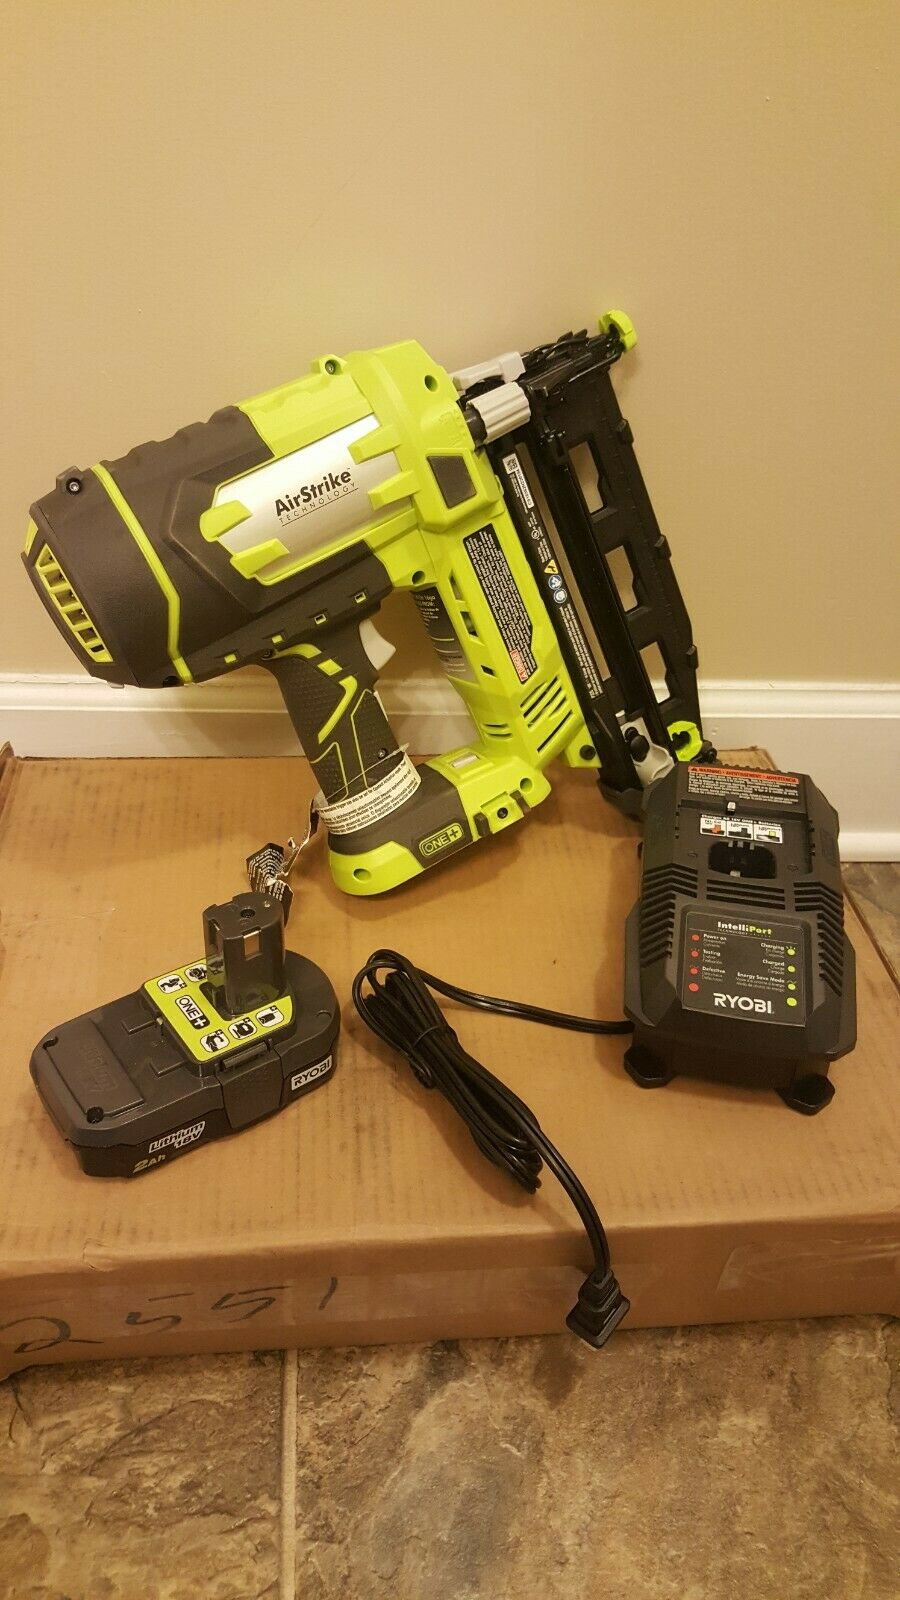 Nailer Kit 16-Gauge 2-1 2 in Straight Finish with 1.3 Ah Battery and Charger